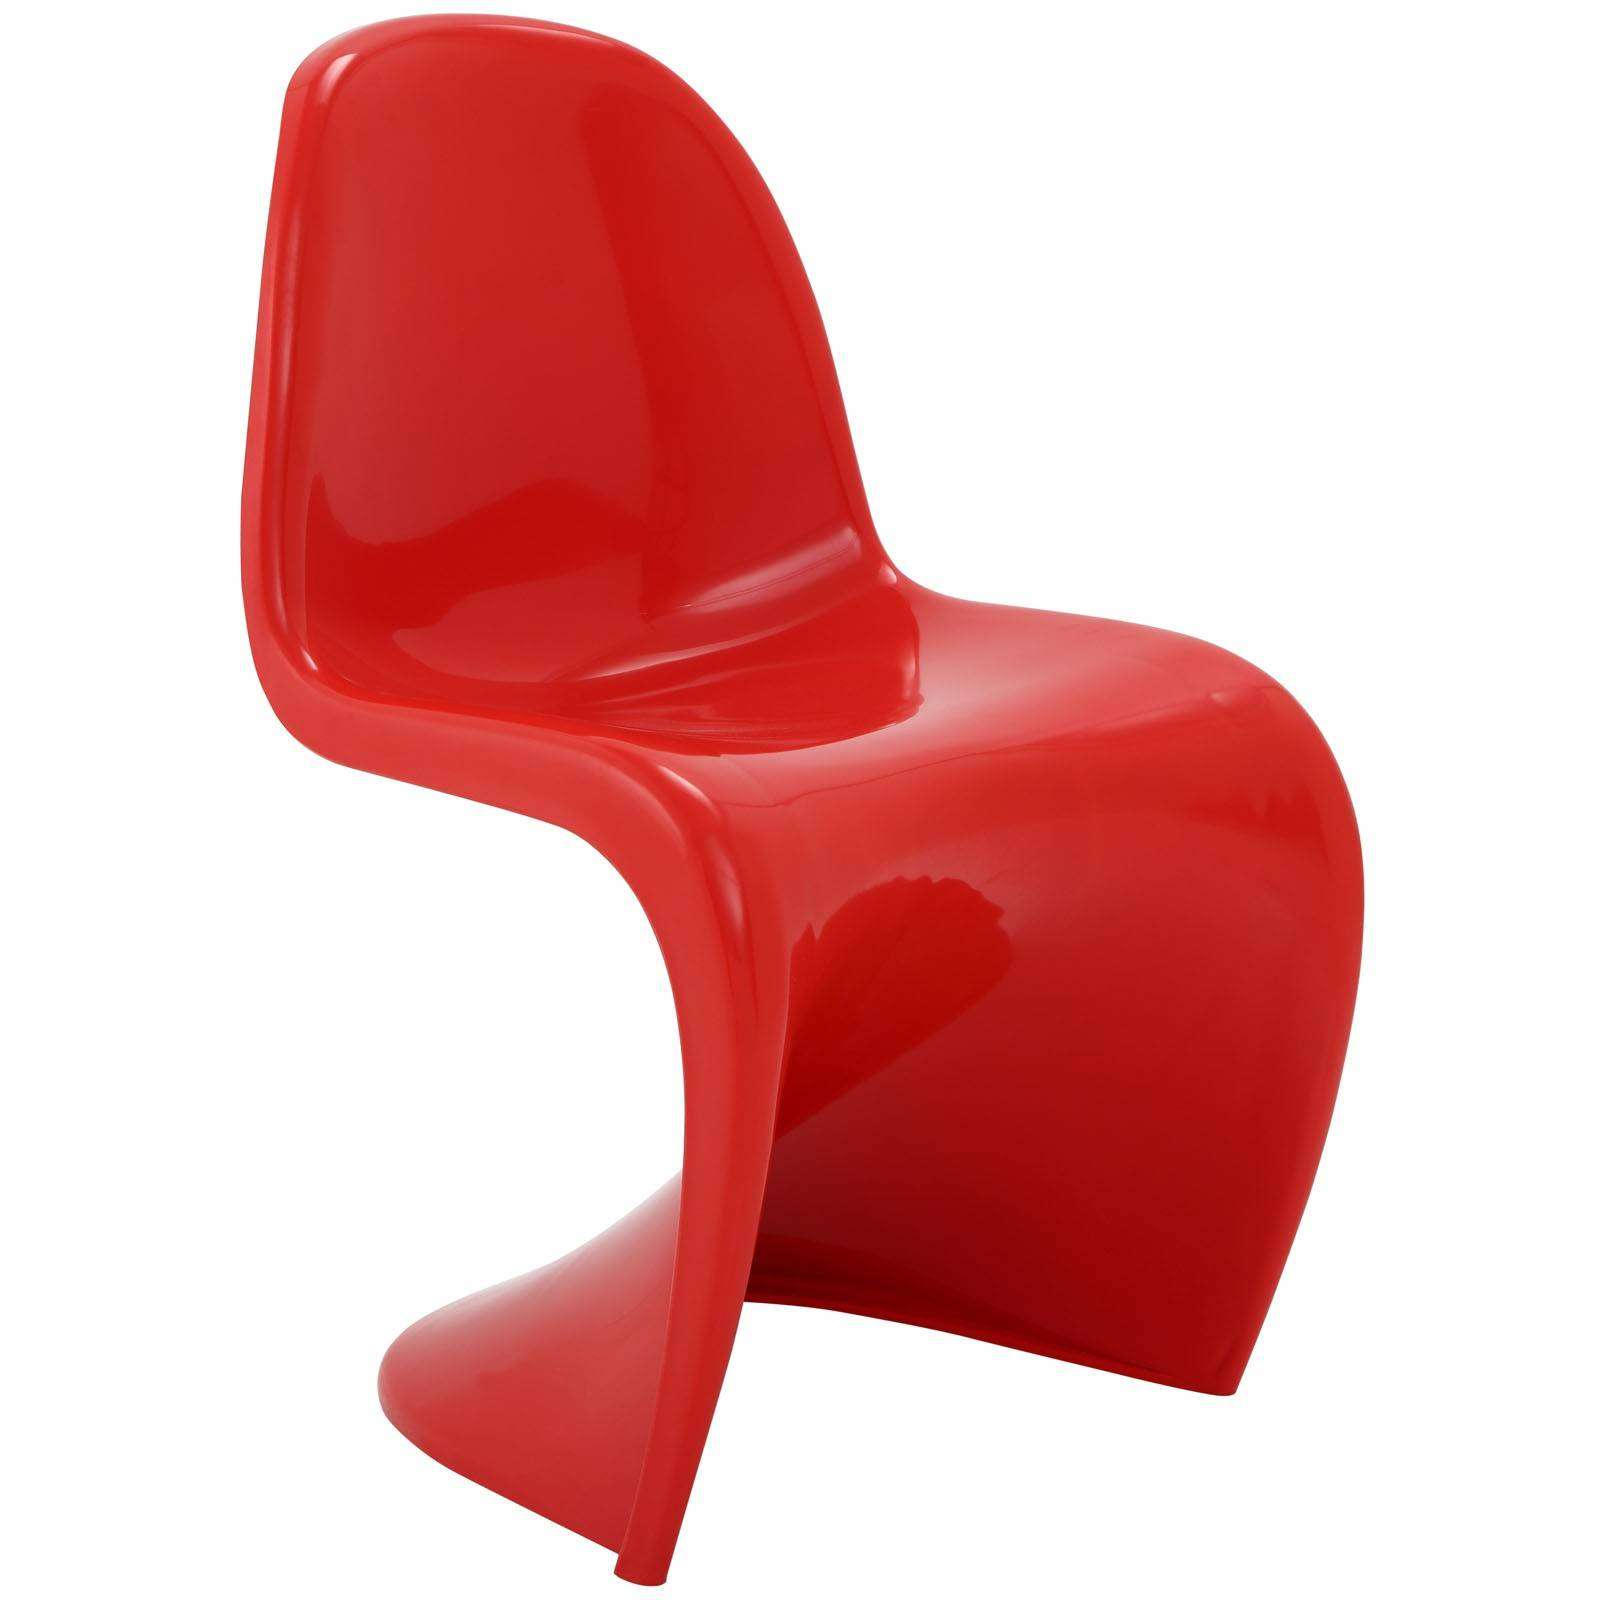 Chaise Pantom Verner Panton Style Chair